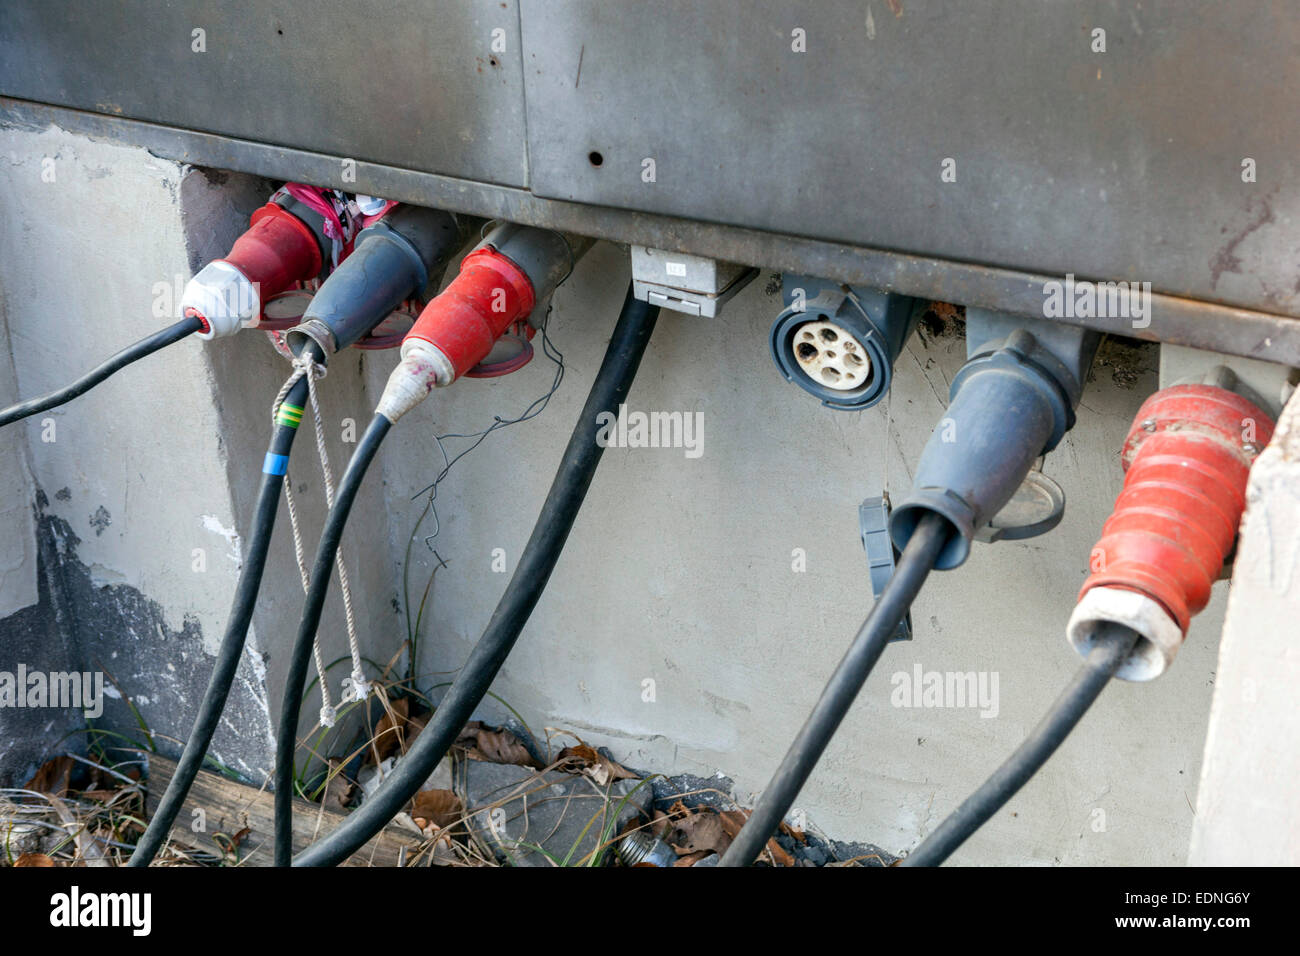 Outside Electrical Sockets Stock Photos Wiring A Plug Outlets Image